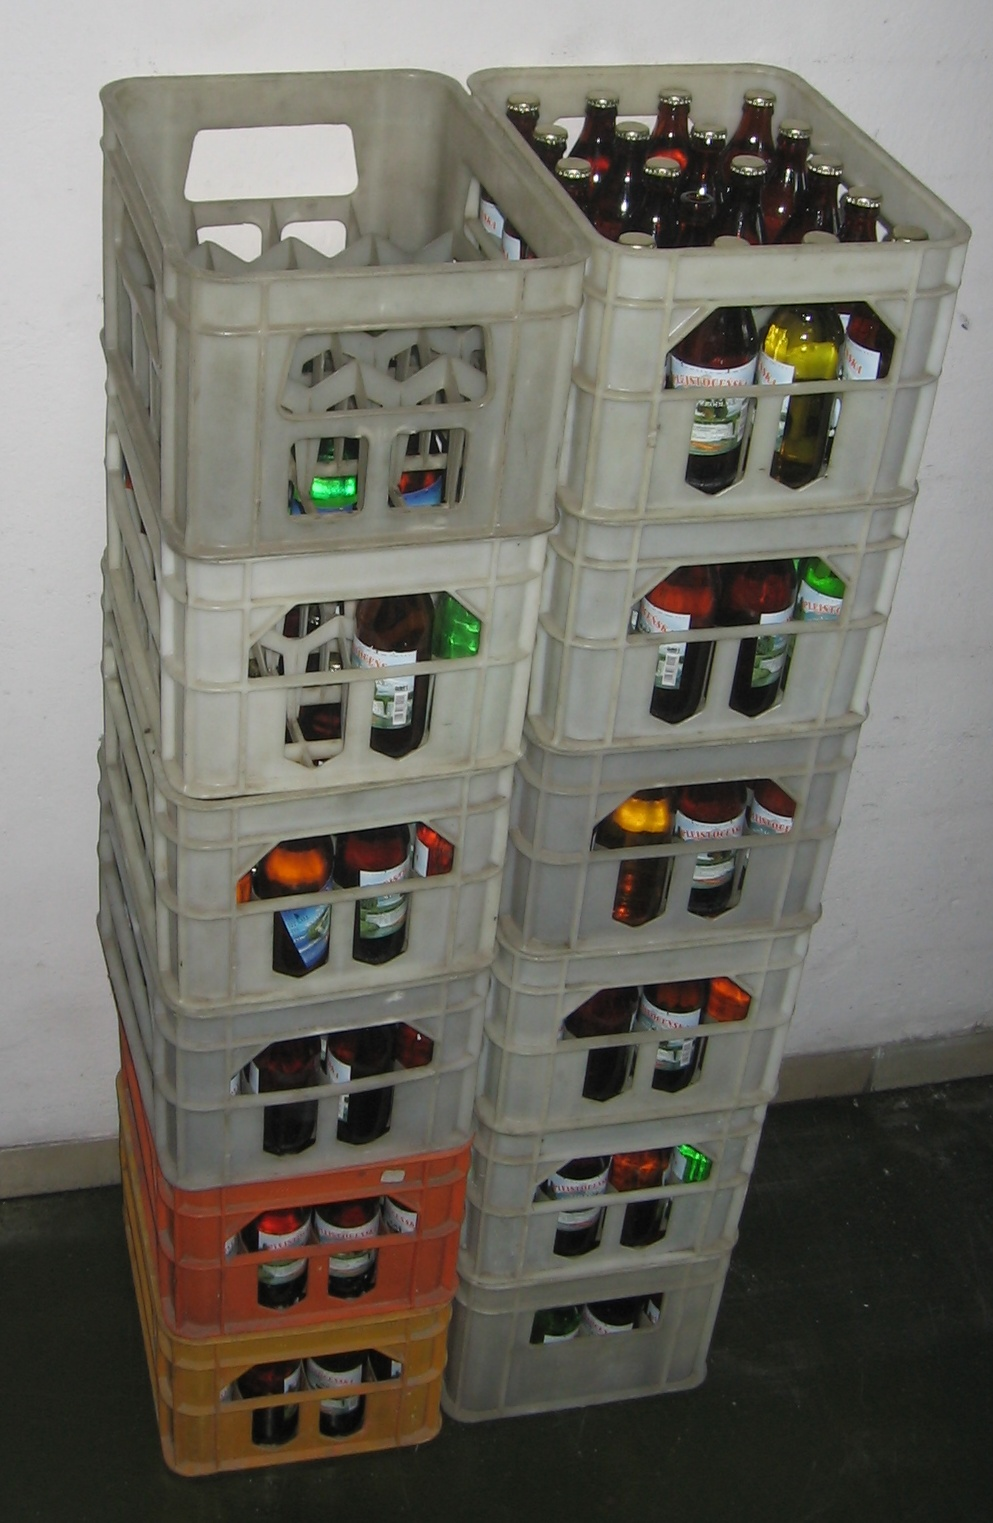 Bottle Crate Wikipedia